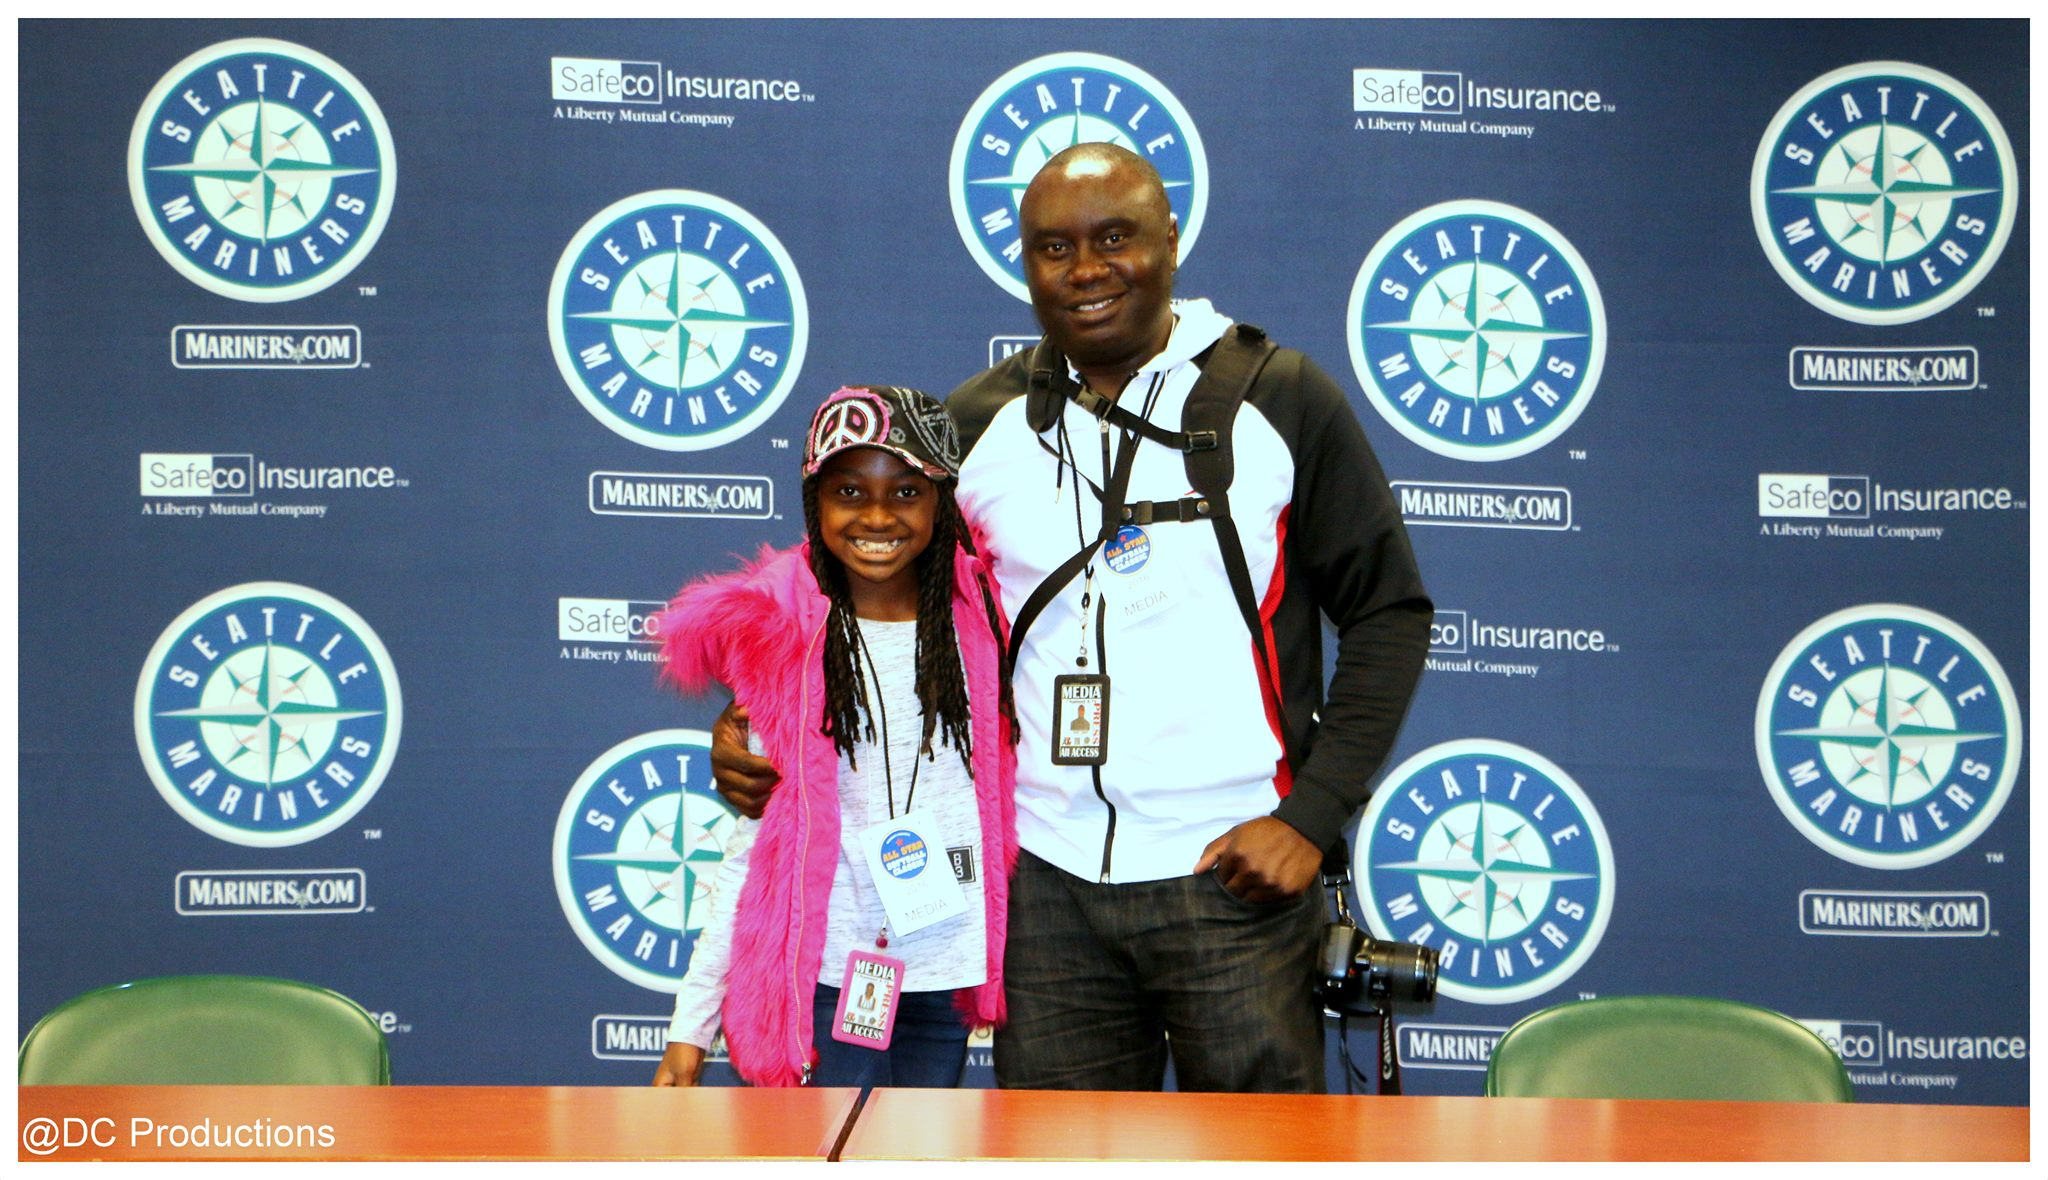 Davies Chirwa Mentoring 11 year old Thandi Chirwa on Professional Sports Media Coverage at Safeco Field in Seattle.